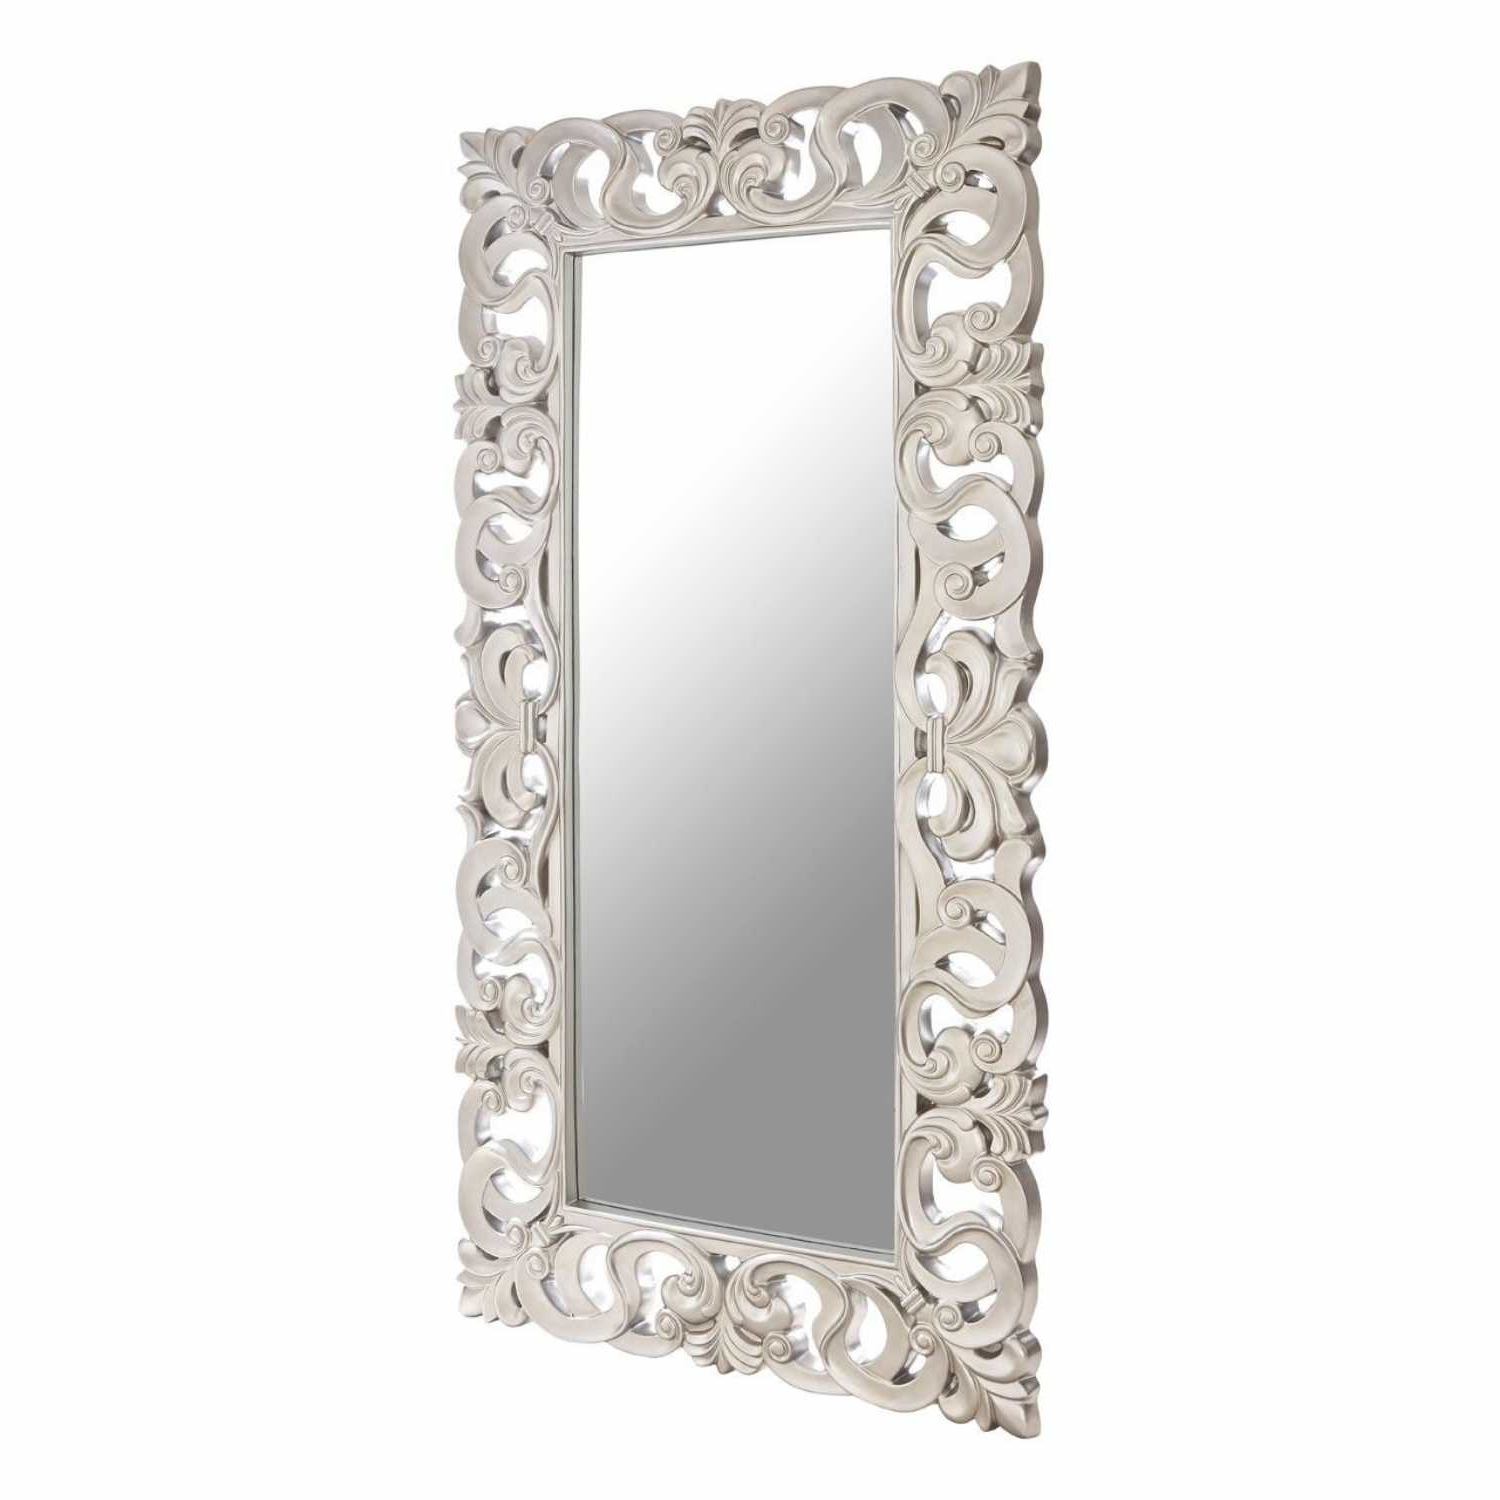 Most Recent Large Decorative Wall Mirrors For Large Modern Silver Finish Ornate Rectangular Decorative Wall Mirror (View 14 of 20)